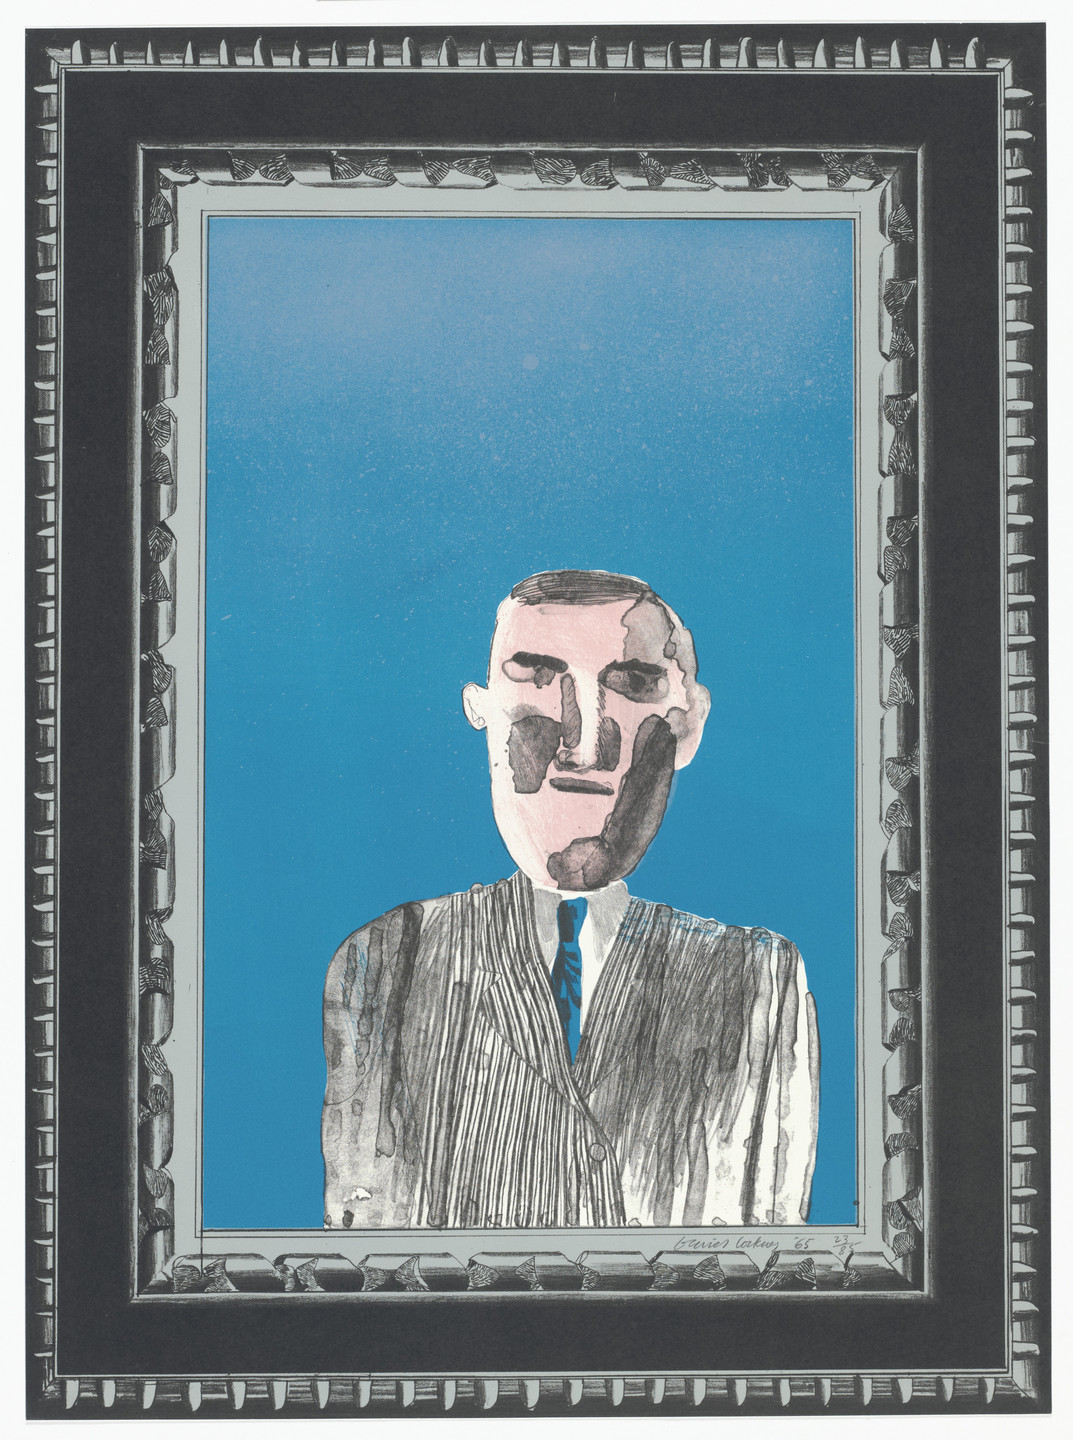 David Hockney. Picture of a Portrait in a Silver Frame from A Hollywood Collection. 1965